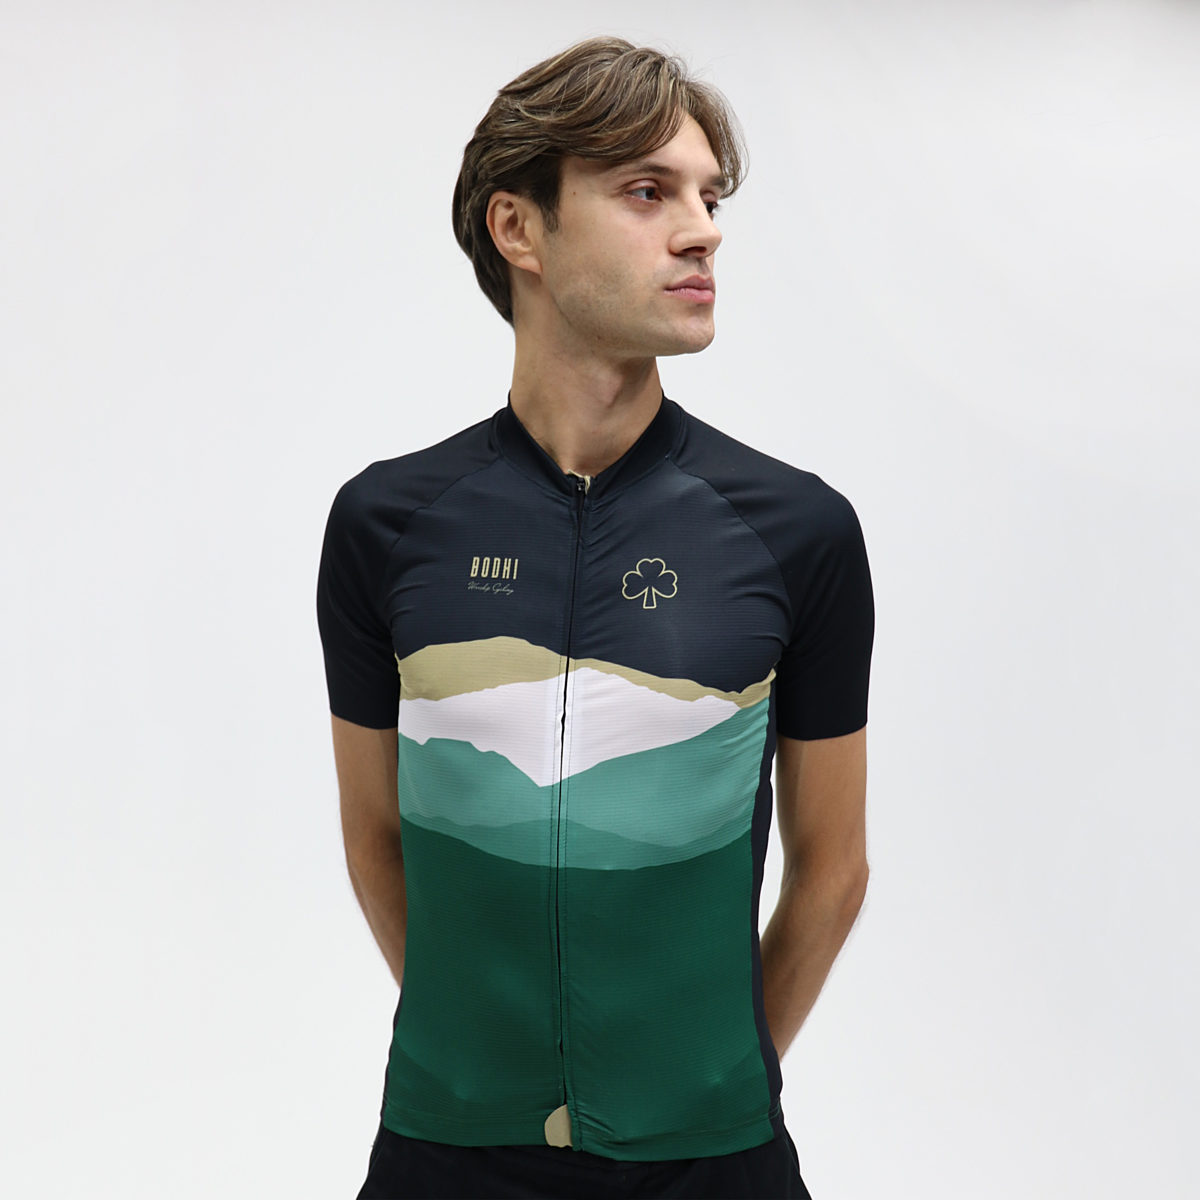 Bodhi cycling collection cotter men front